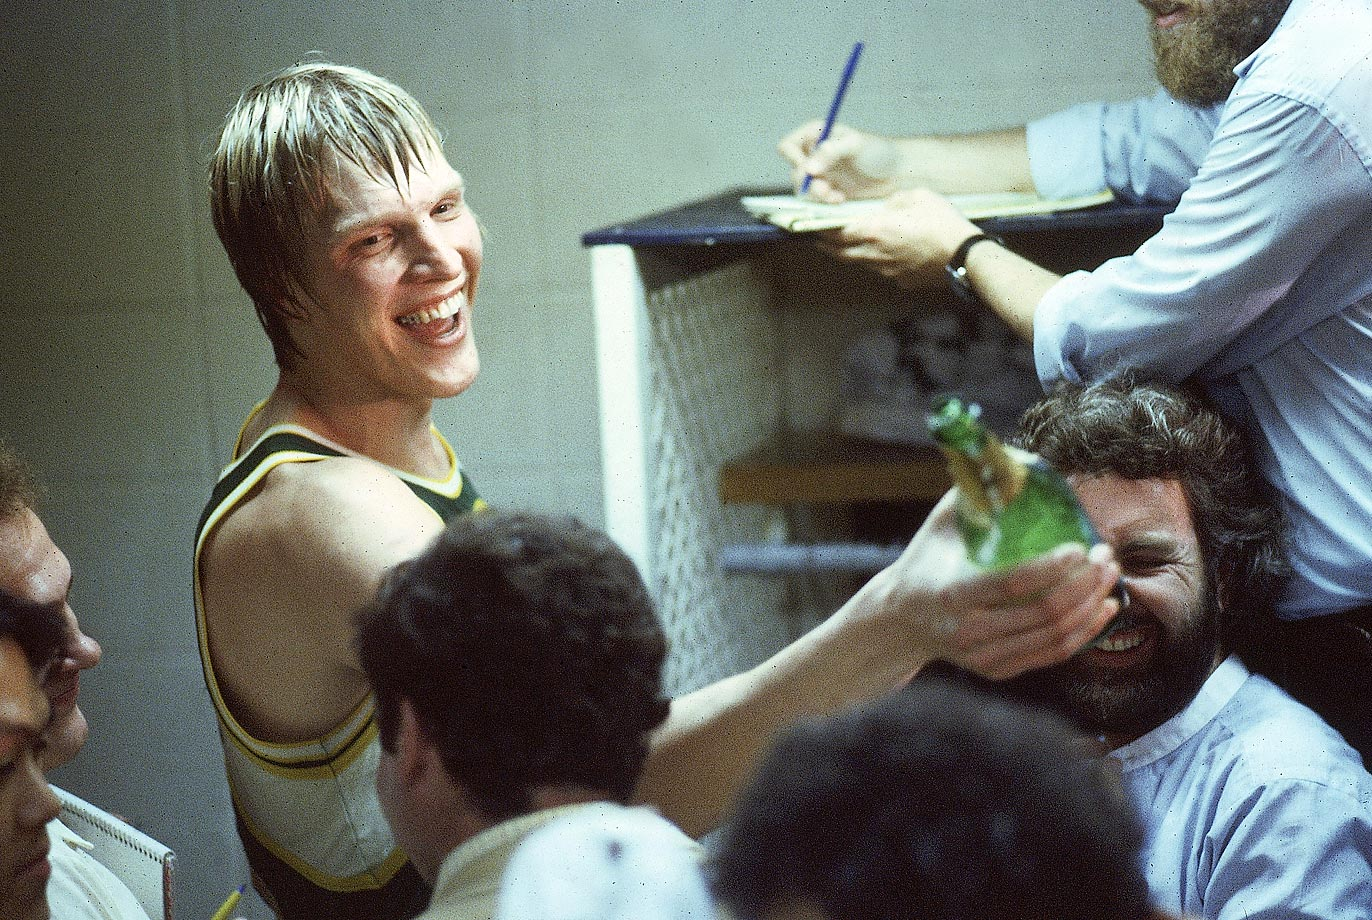 Jack Sikma of the Supersonics celebrates after the series-winning Game 5 against the Washington Bullets. It would be Seattle's lone championship in franchise history.